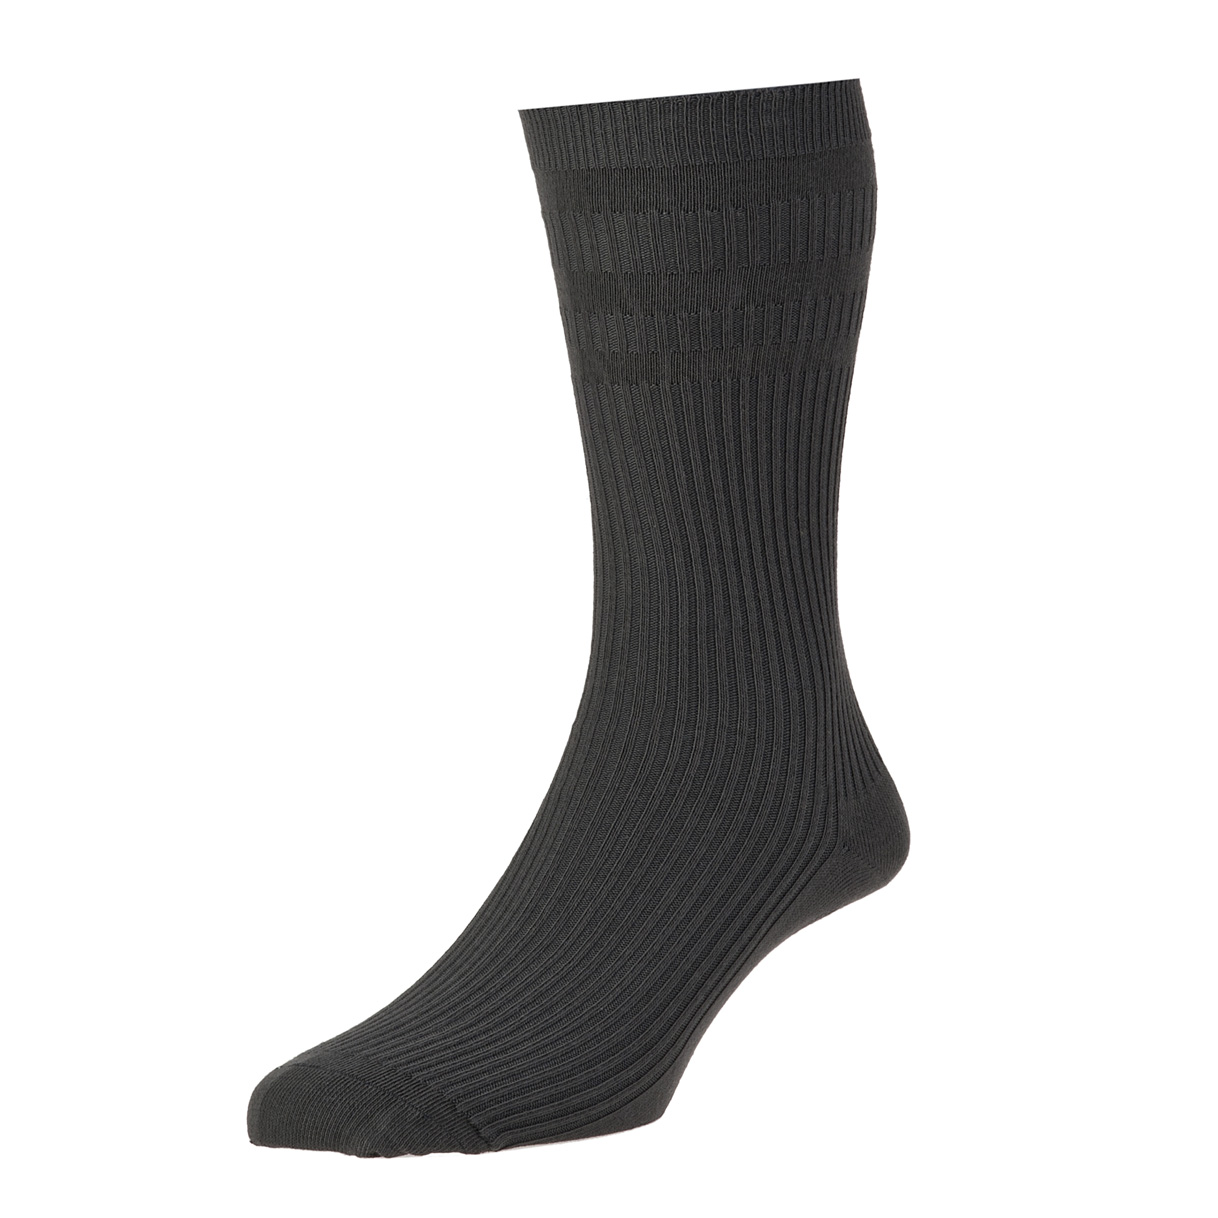 HJ Hall Softop Mens Cotton Socks size 6-11  Charcoal HJ91